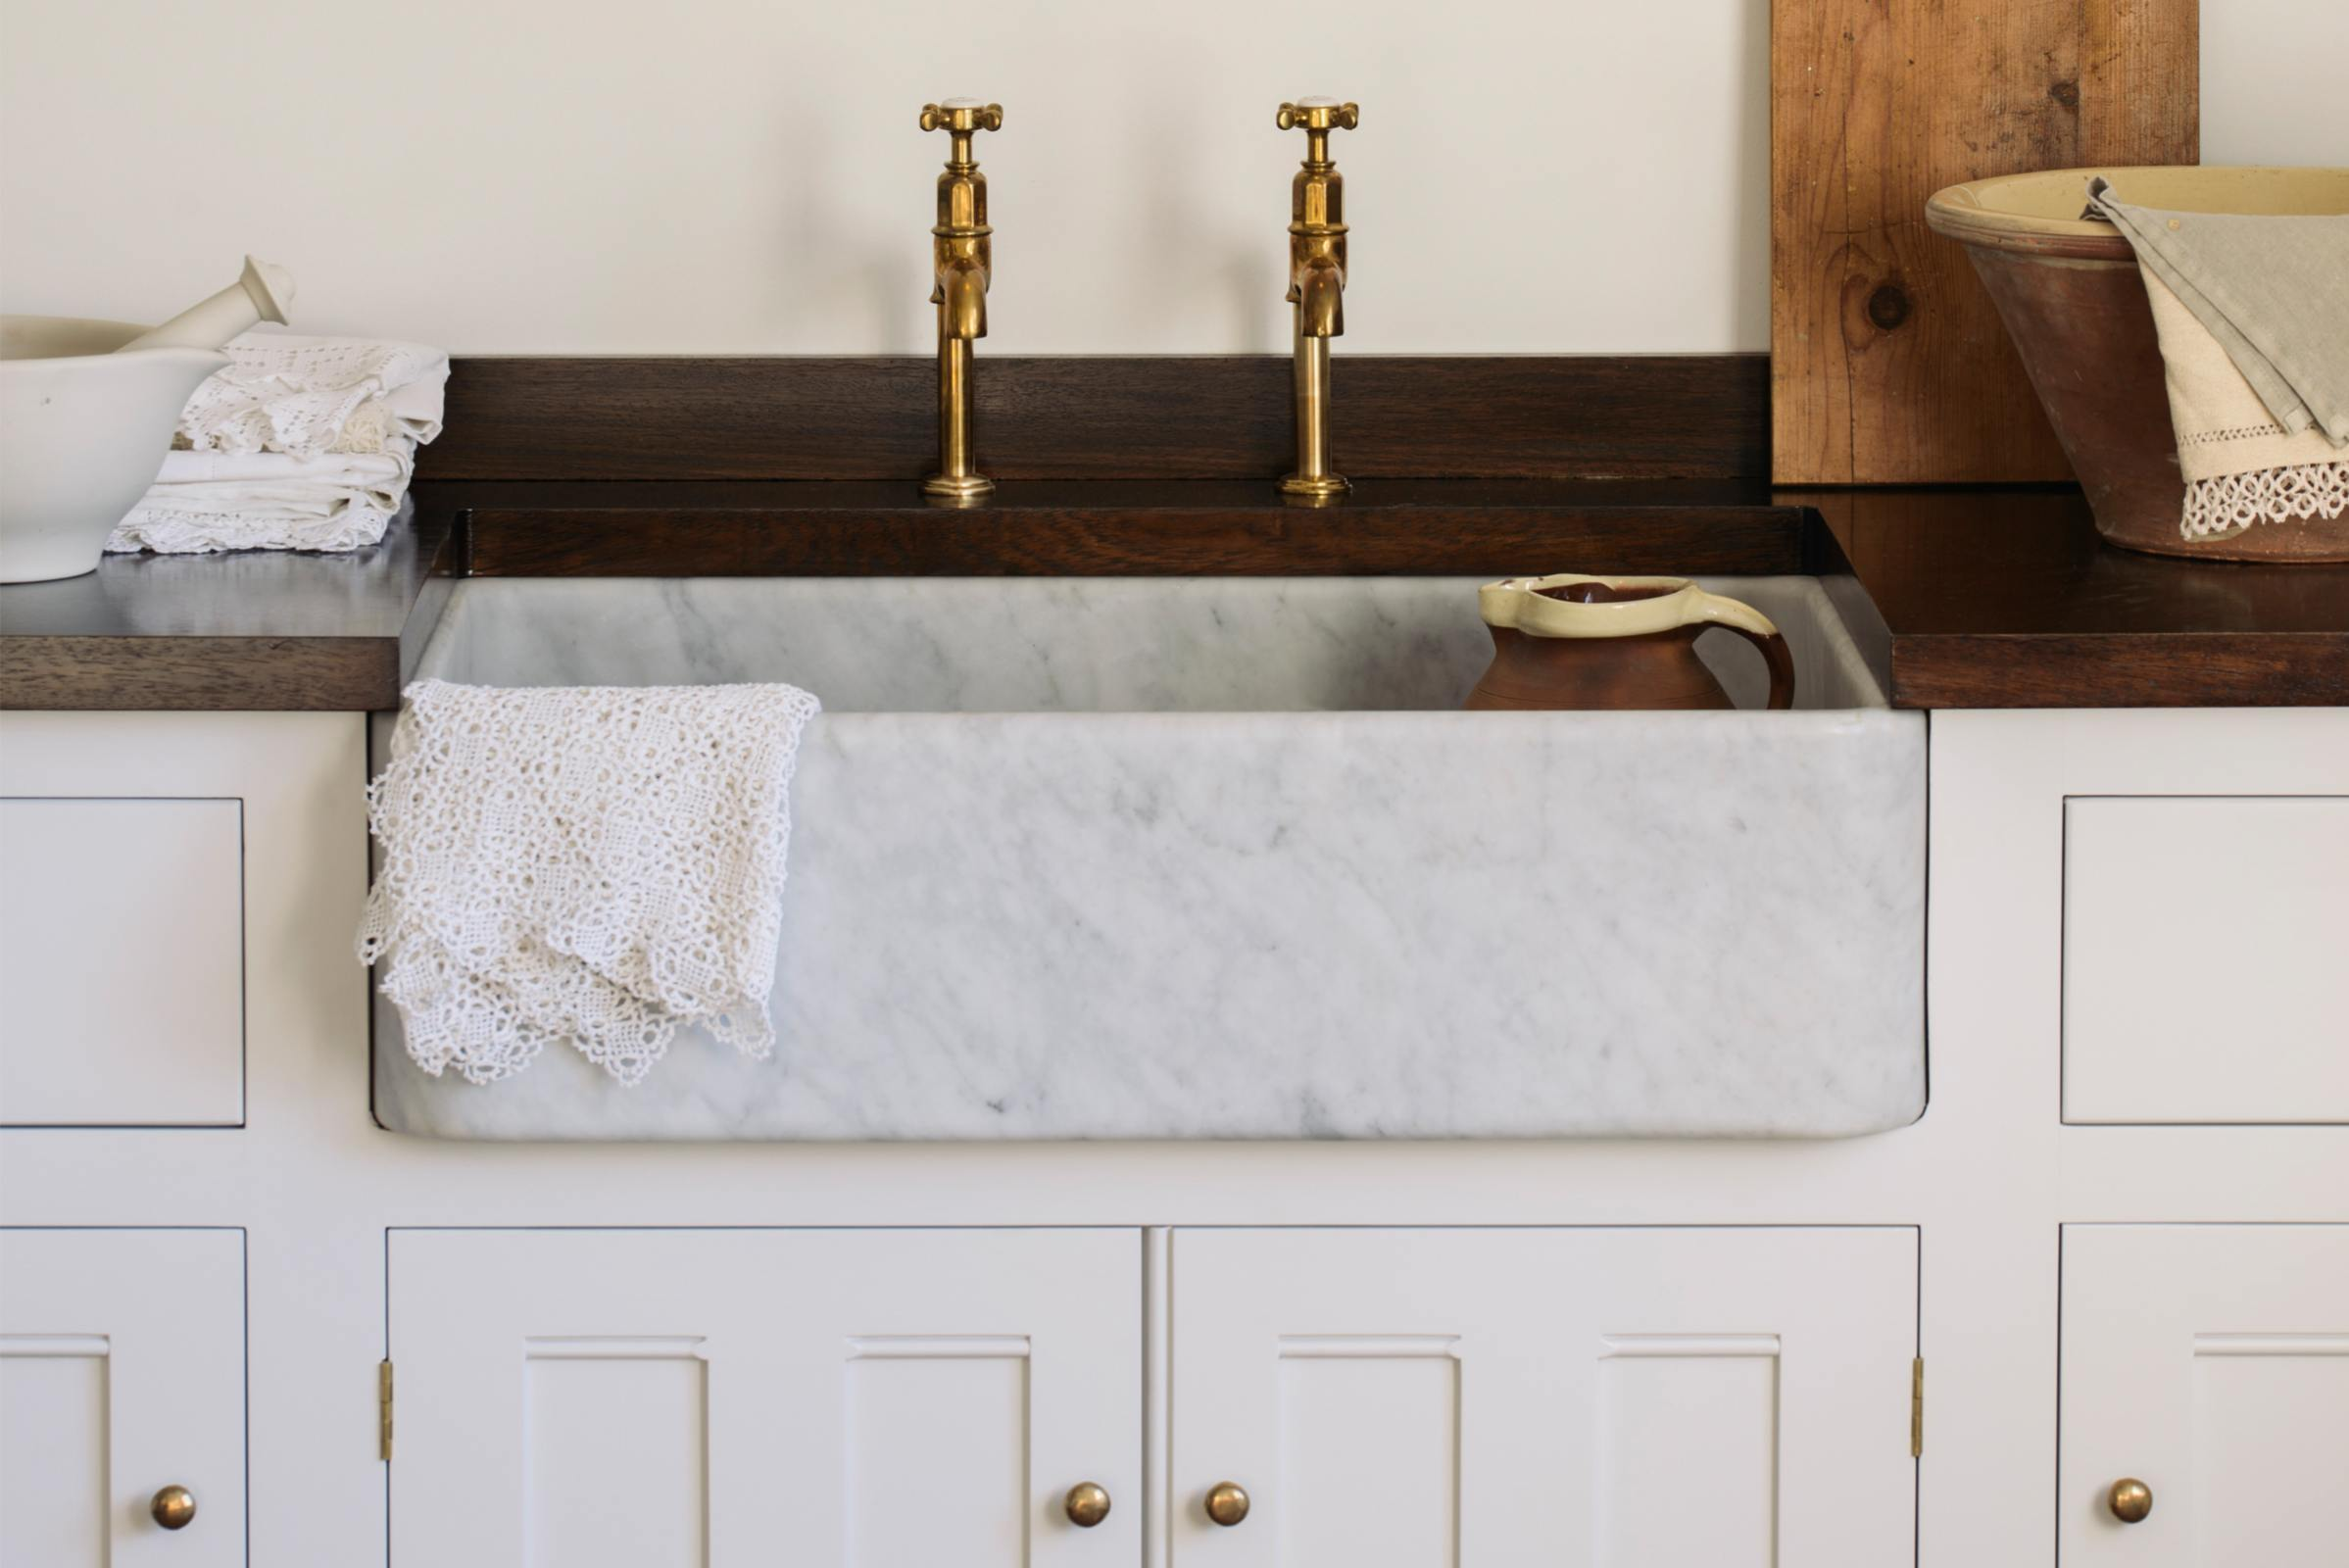 Tuscan Farmhouse 800 Single Marble Sink photo 5